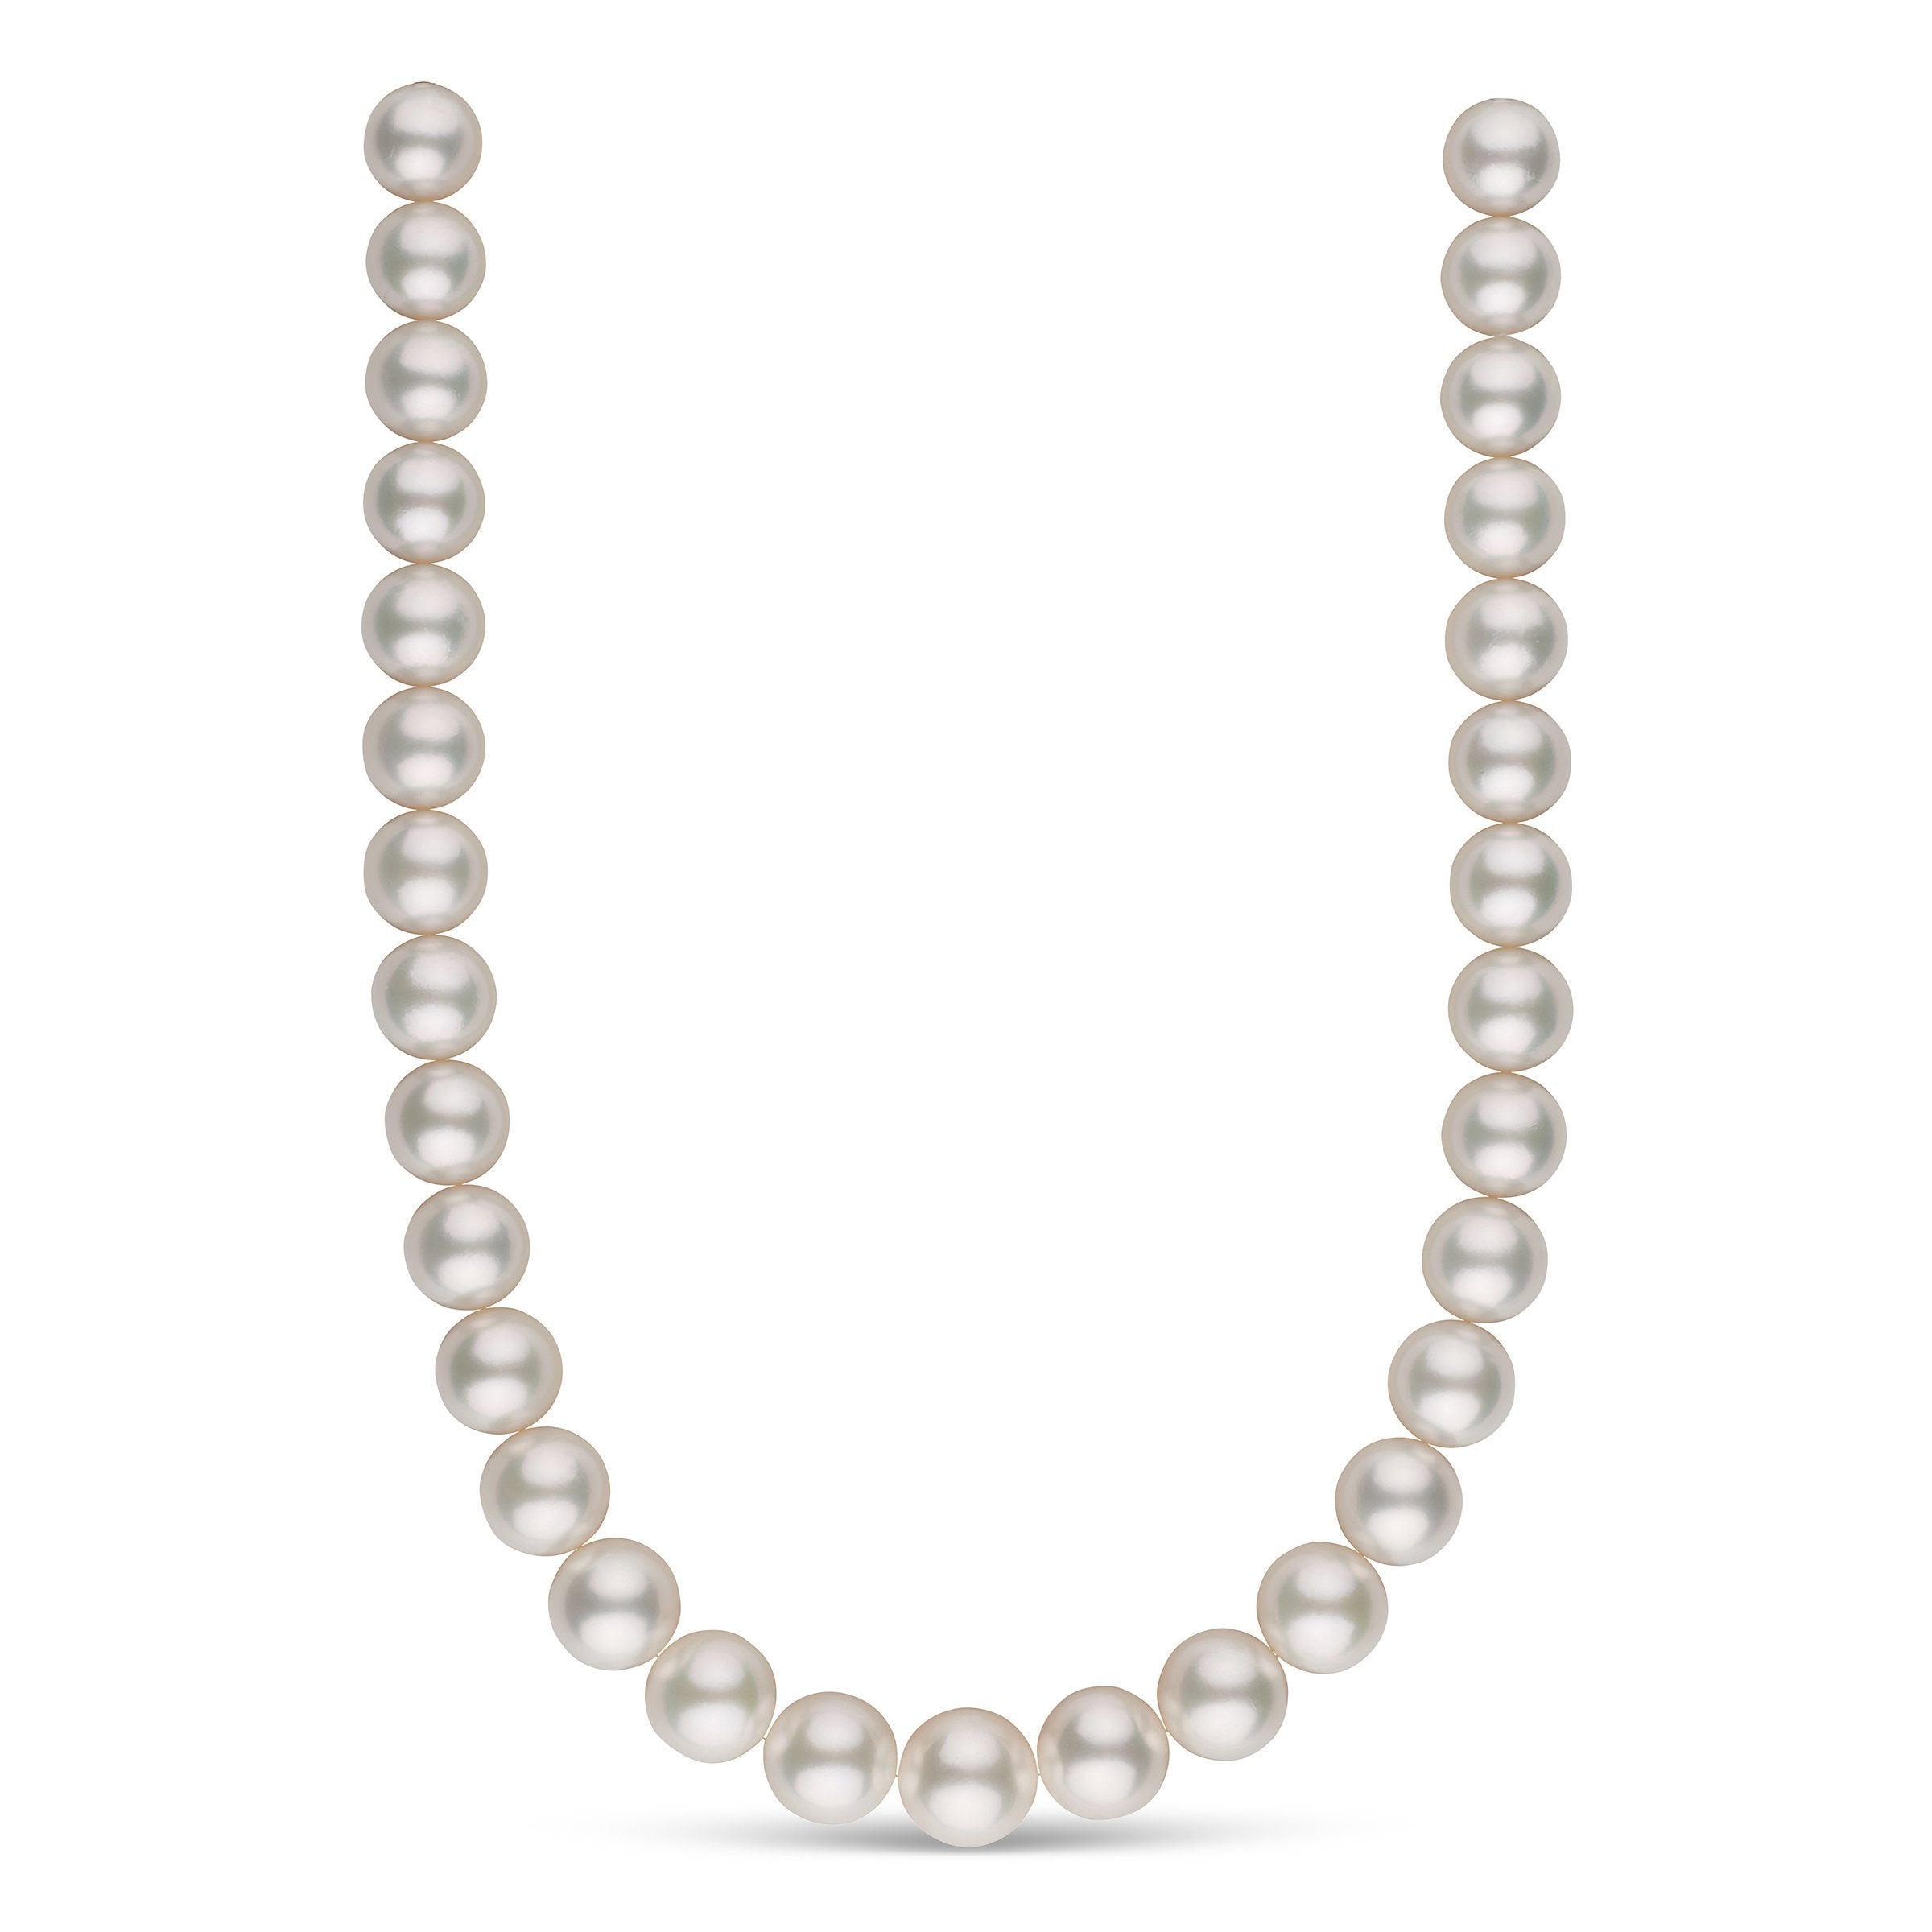 The Beethoven White South Sea Pearl Necklace